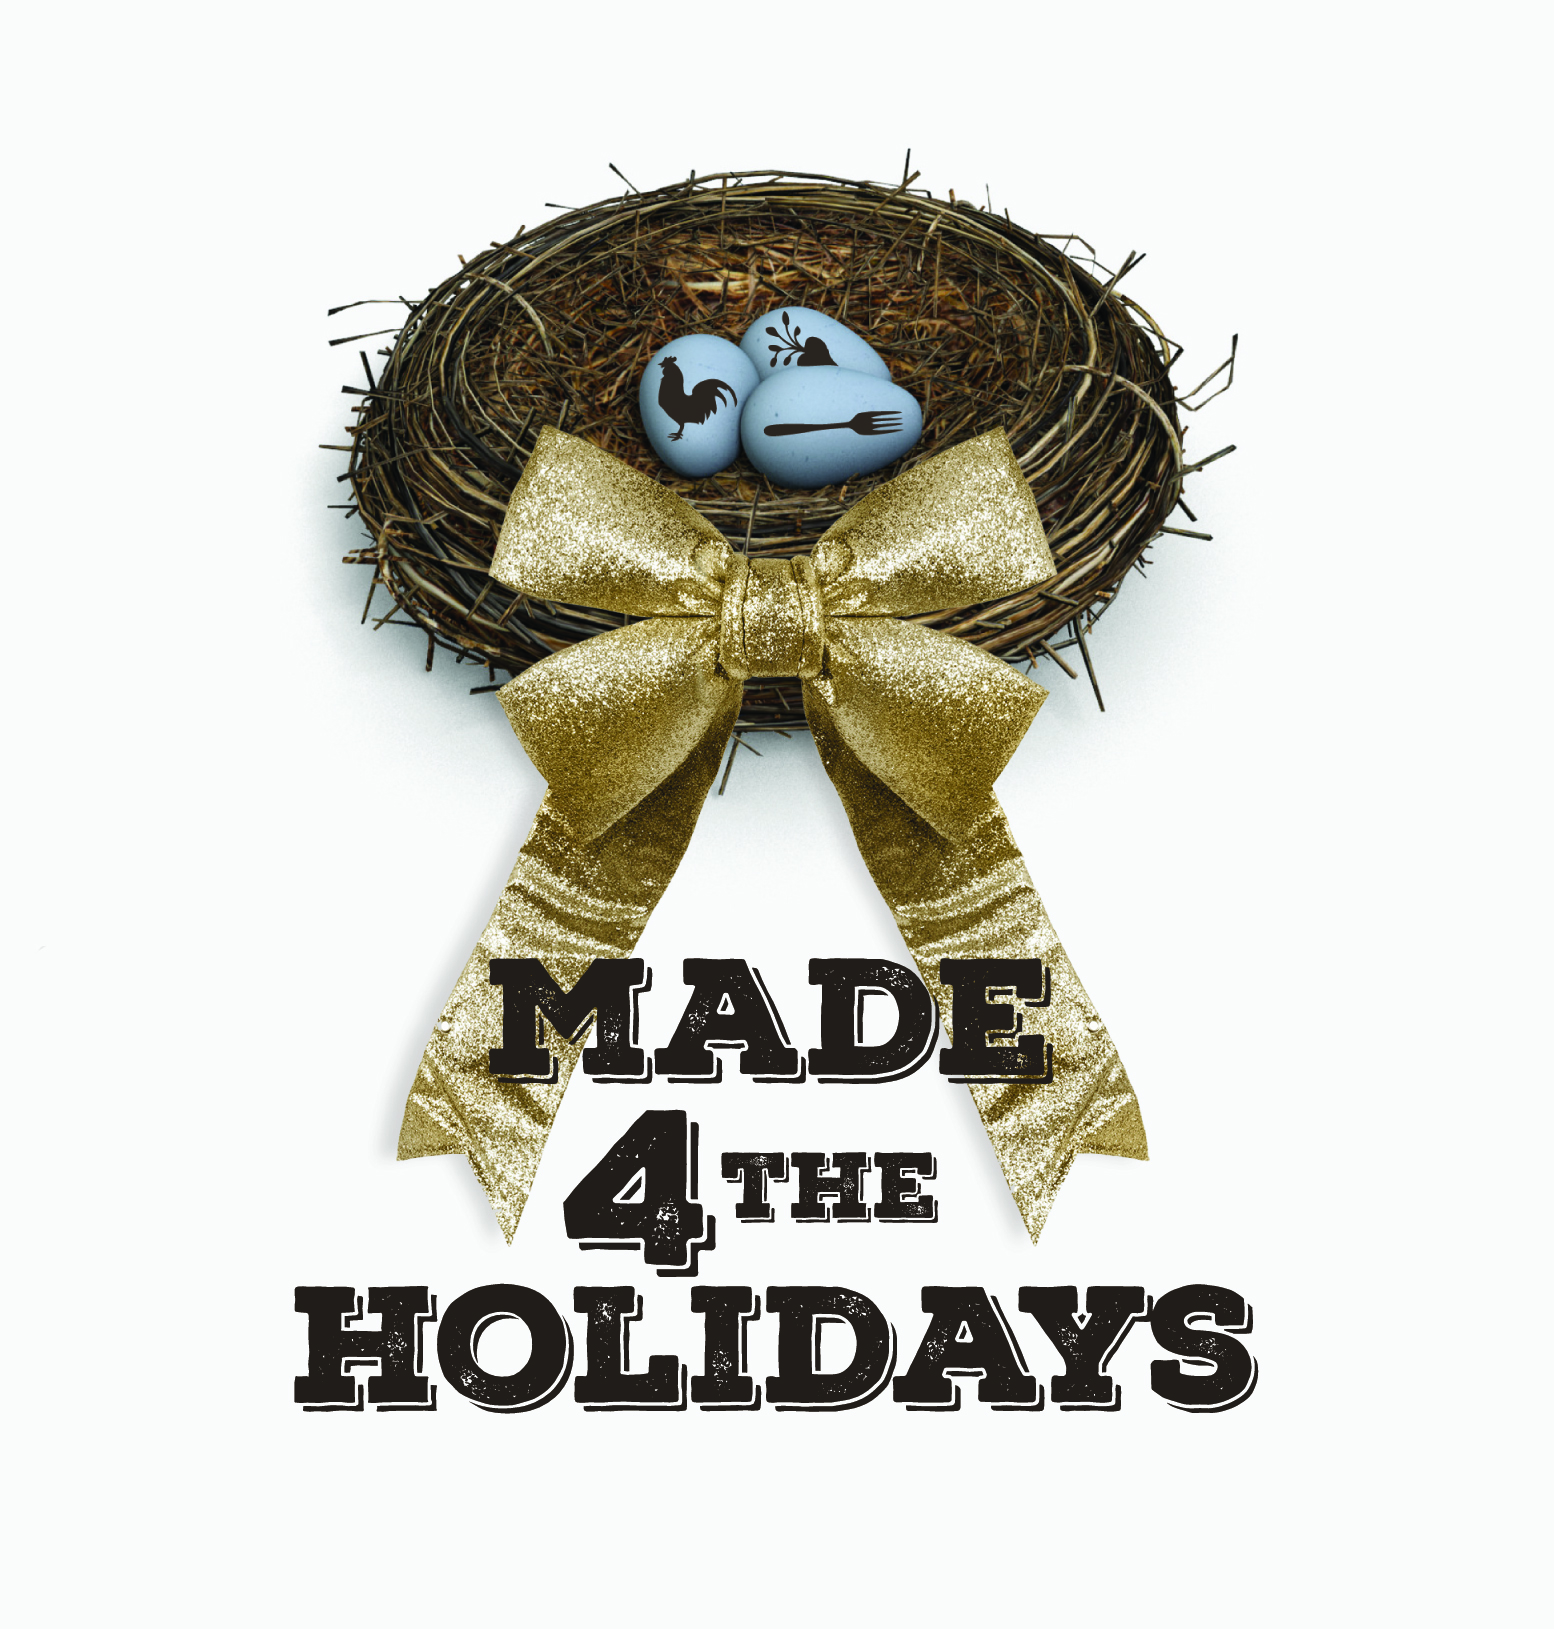 MADE 4 the Holidays: Arts, Crafts, & Pottery Show is Sunday, November 13 at 11 AM – 4 PM